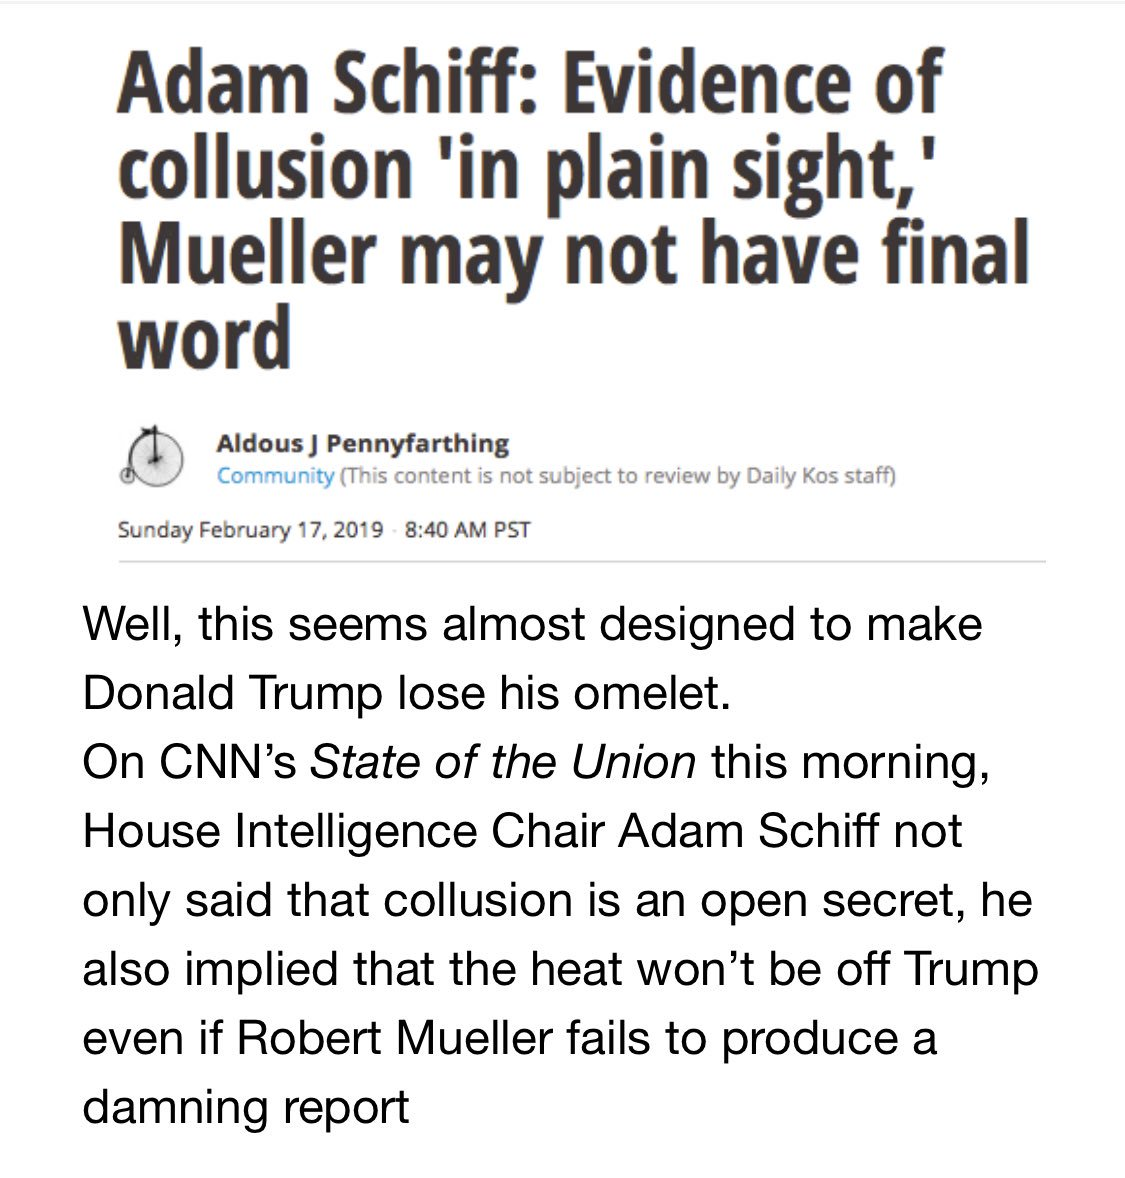 "072d4ea8 ""We may also need to see the #evidence behind that report,"" he said @maddow  https://tinyurl.com/y5nuch28 pic.twitter.com/OmW3ru9fI8"